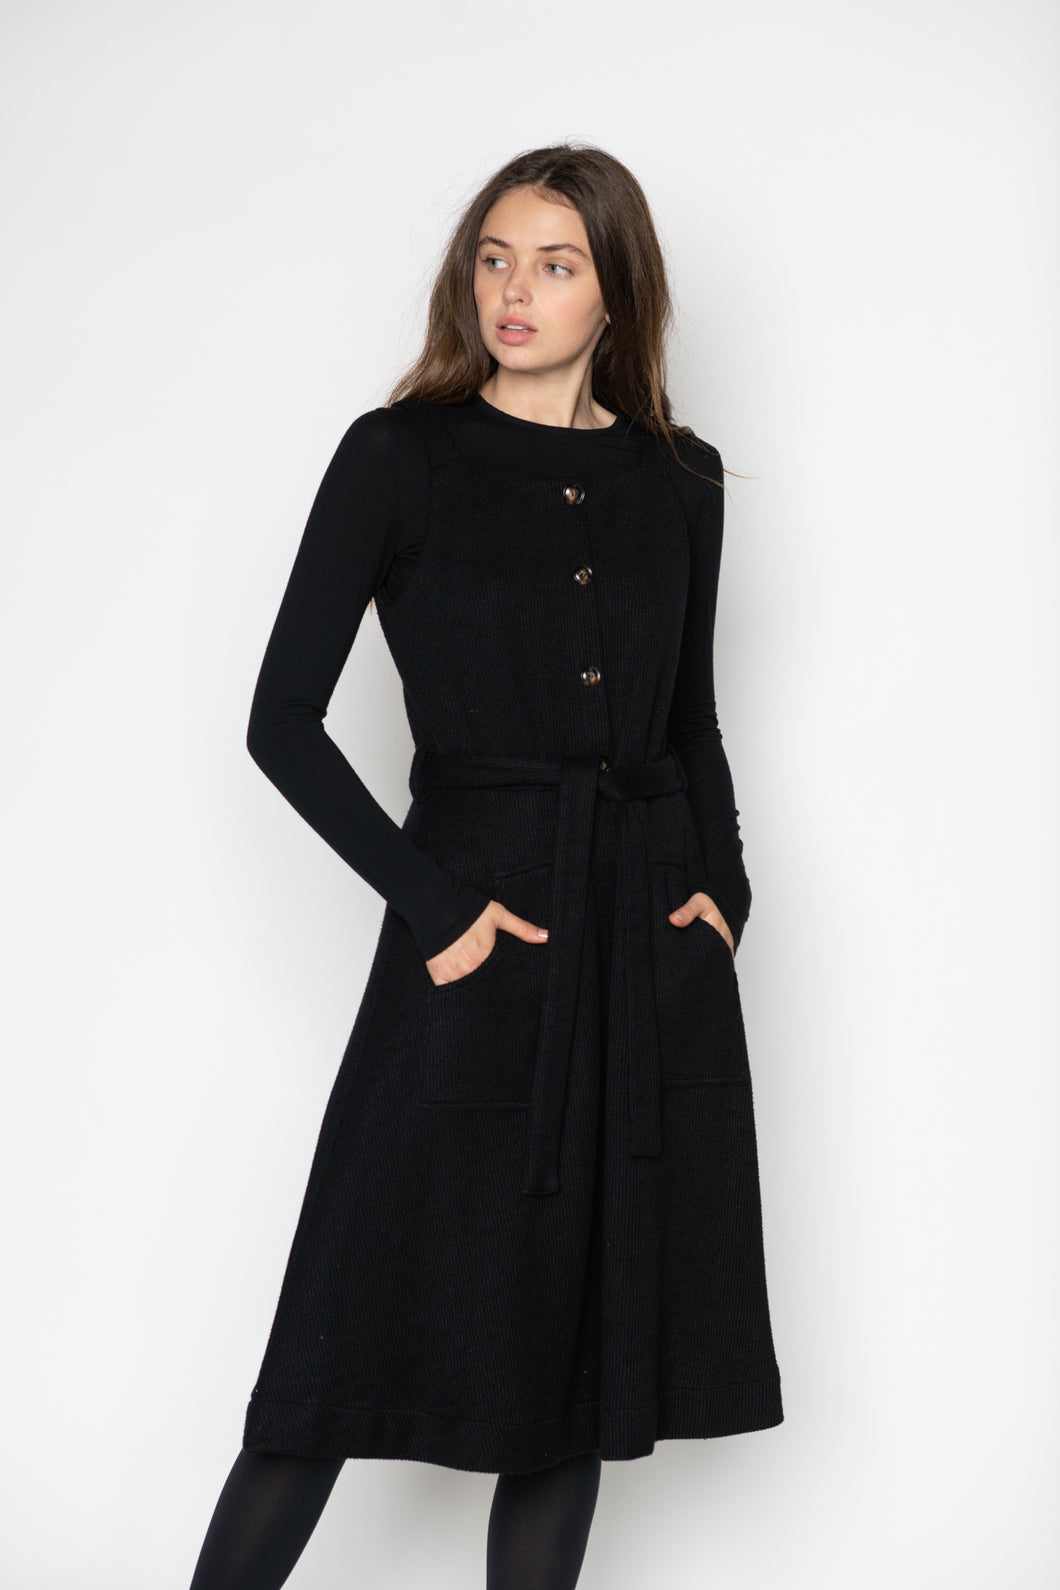 LU KNIT JUMPER DRESS WITH POCKETS AND KNIT BELT